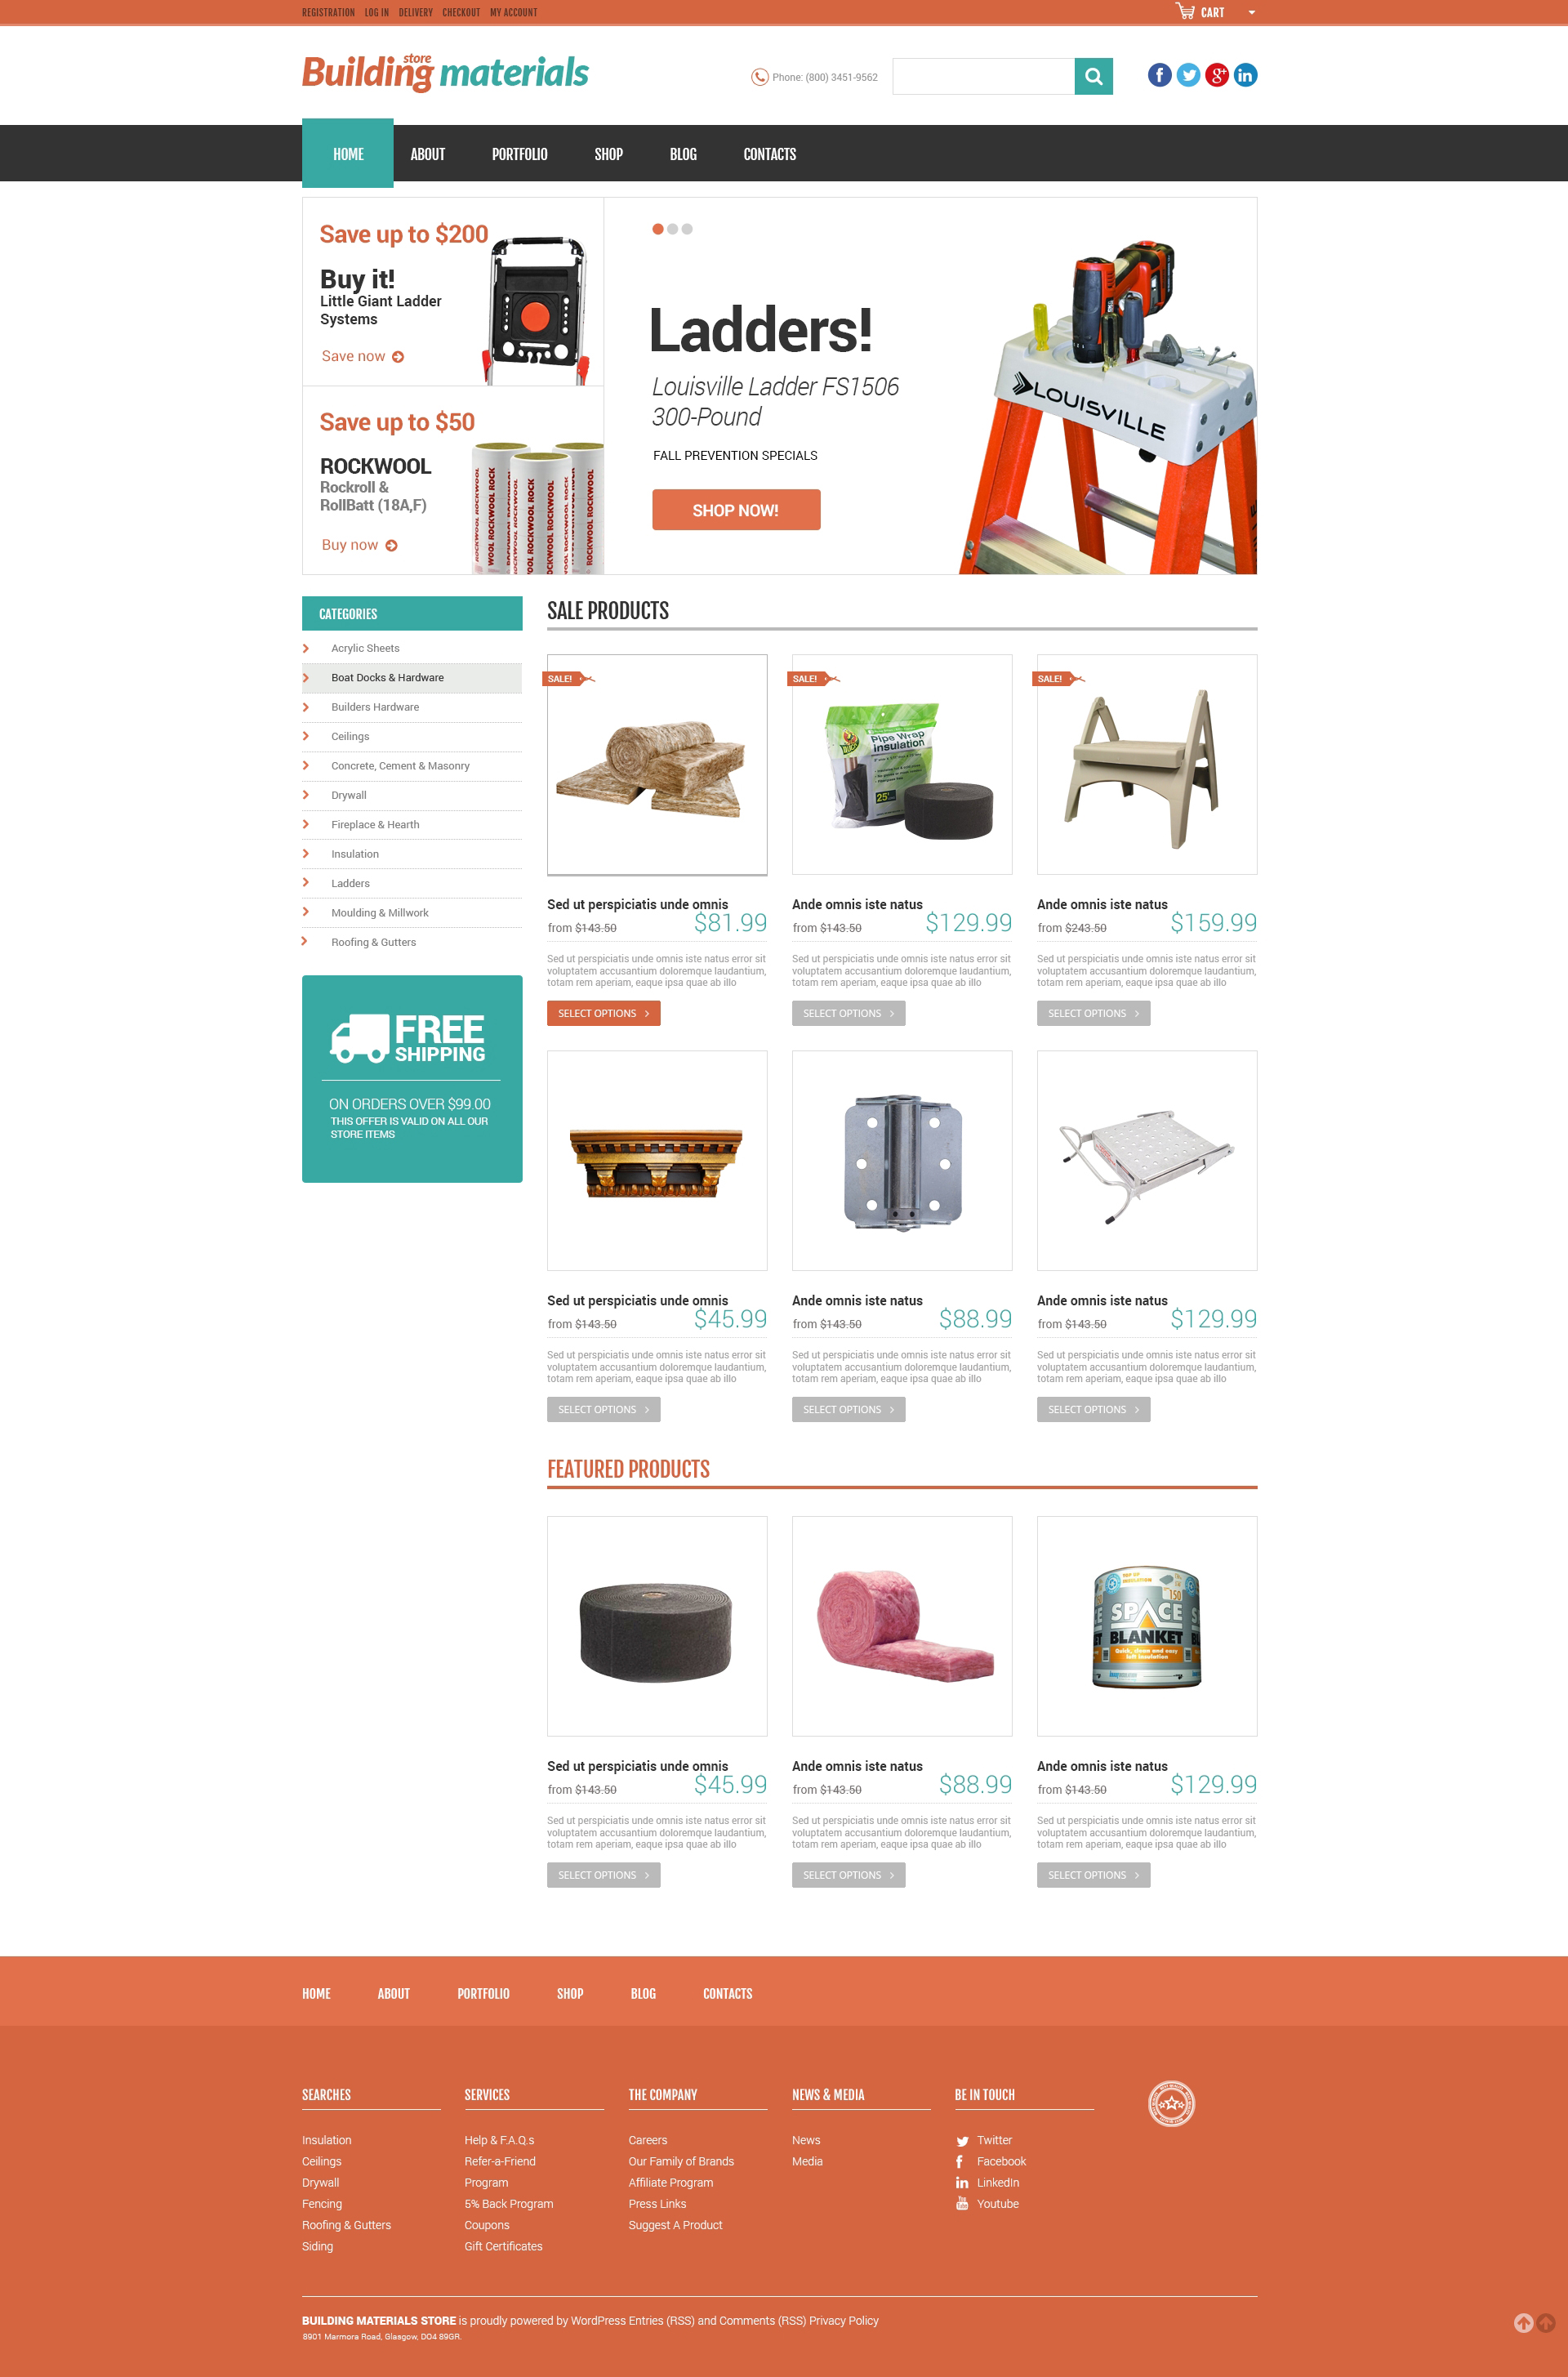 Online stores of building materials: a selection of sites